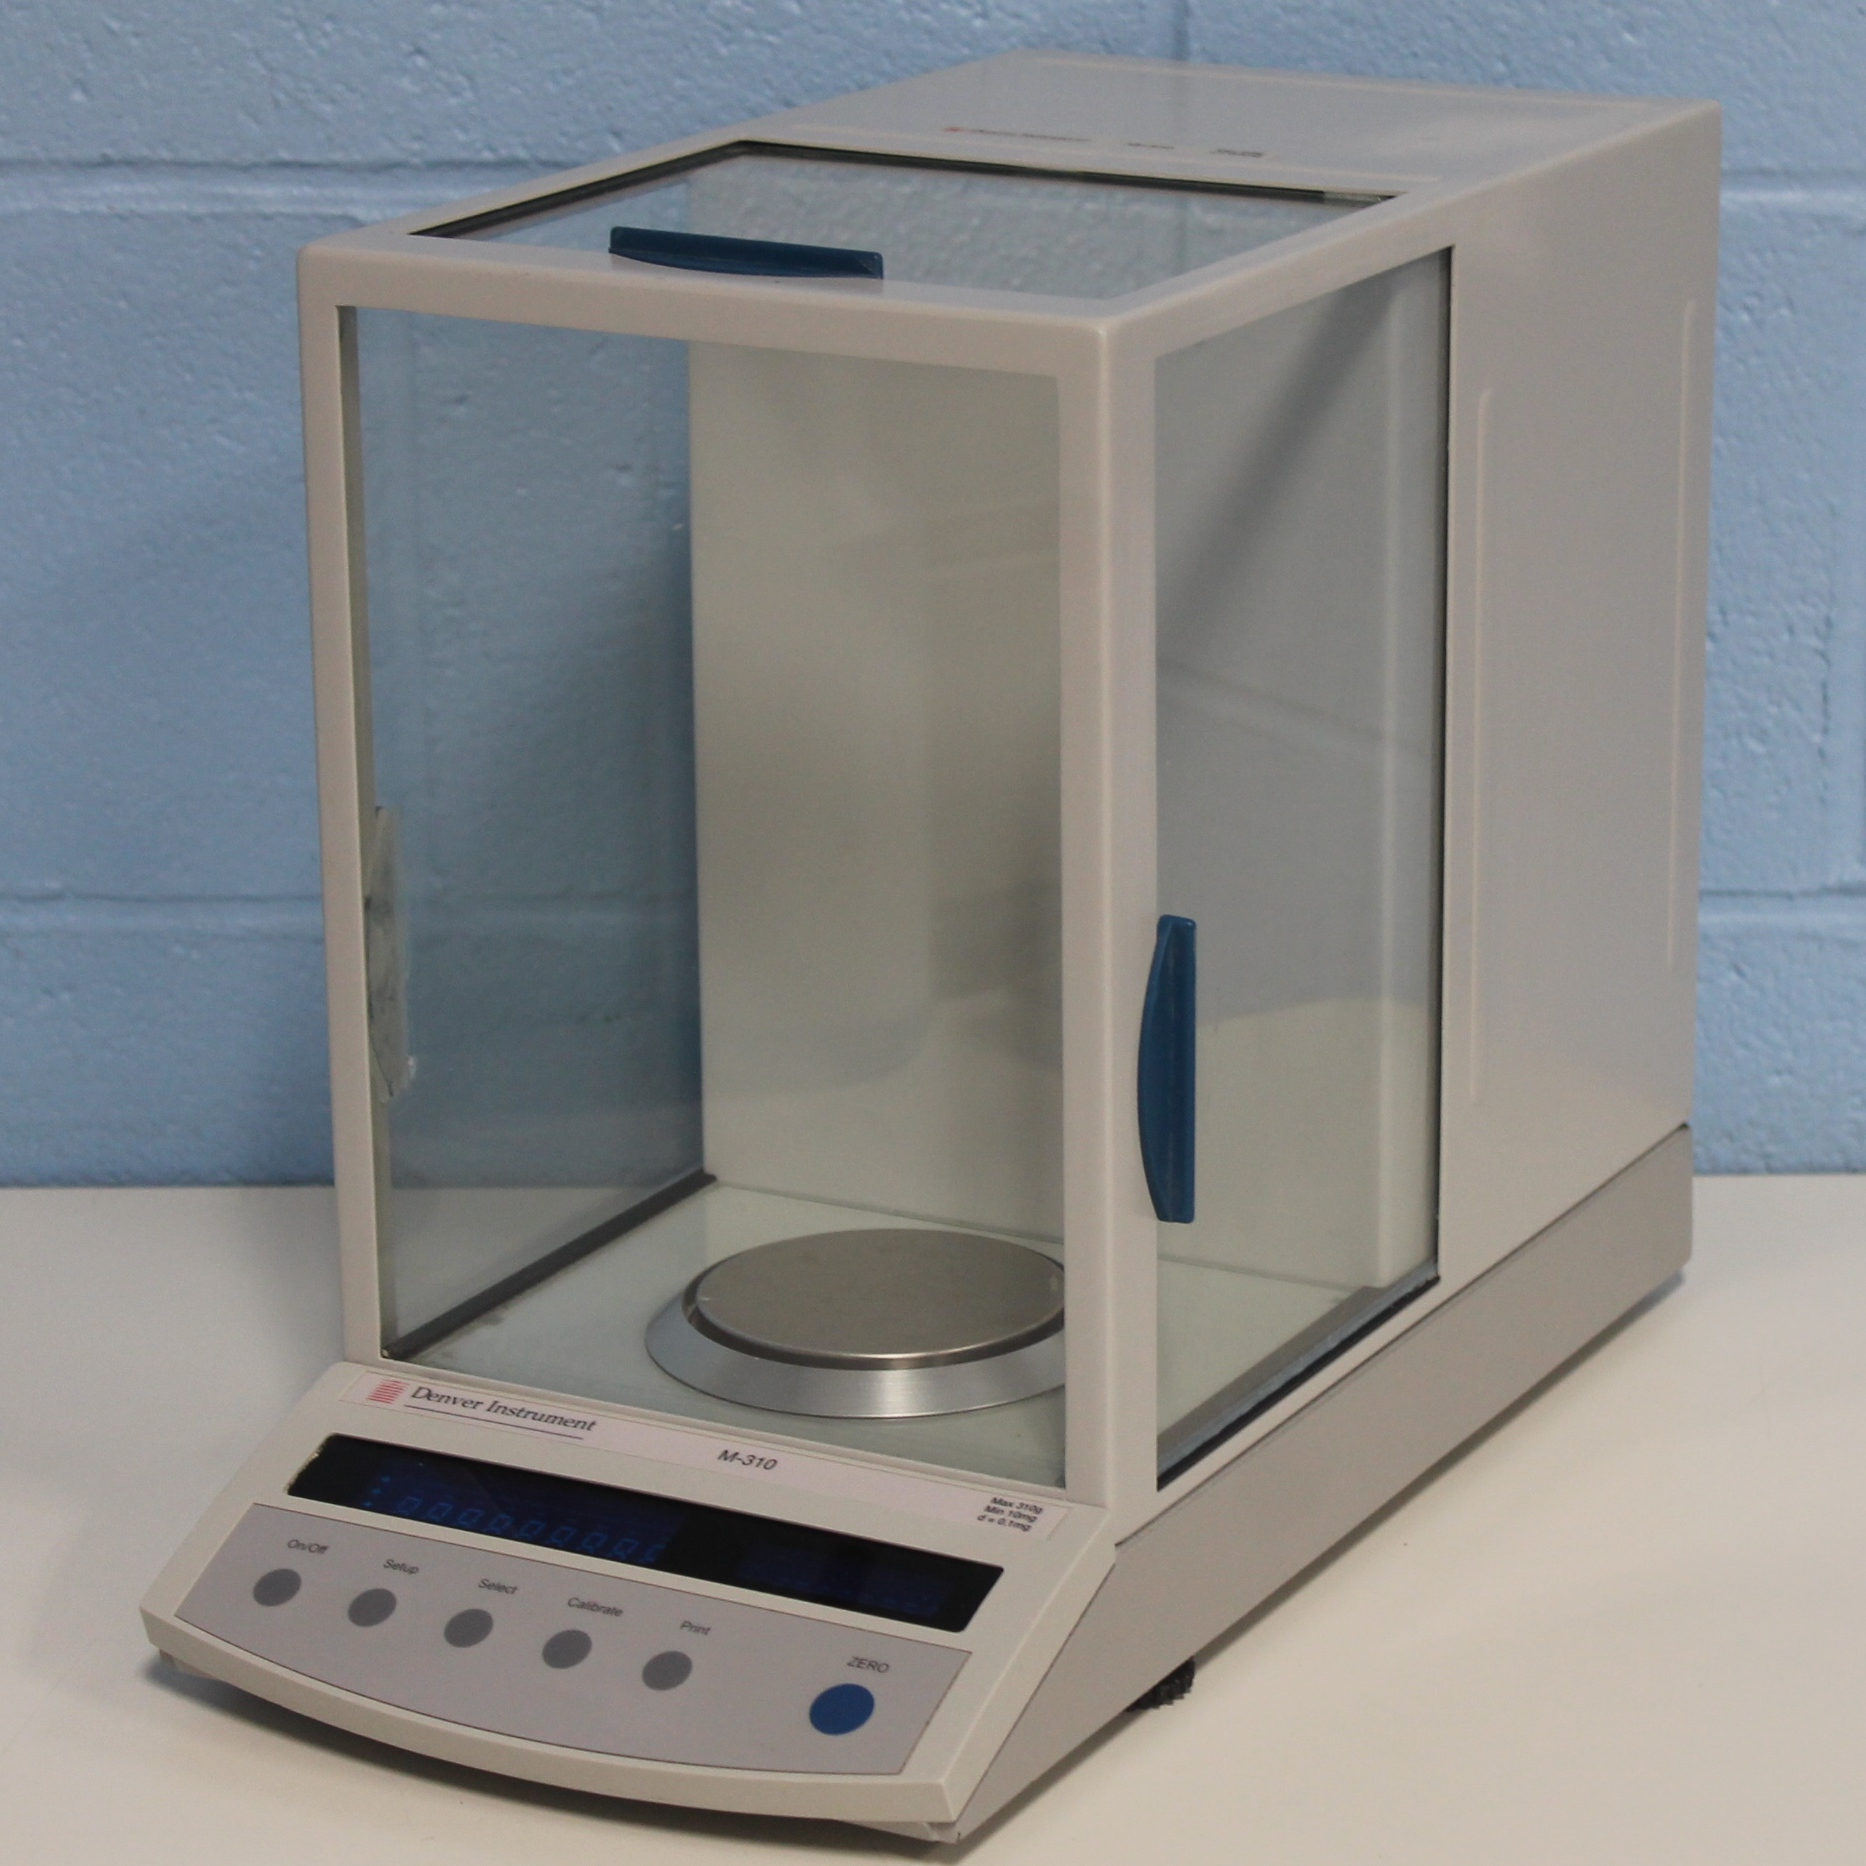 Balance Laboratory Apparatus Refurbished E C Apparatus Corp M 310 Analytical Balance